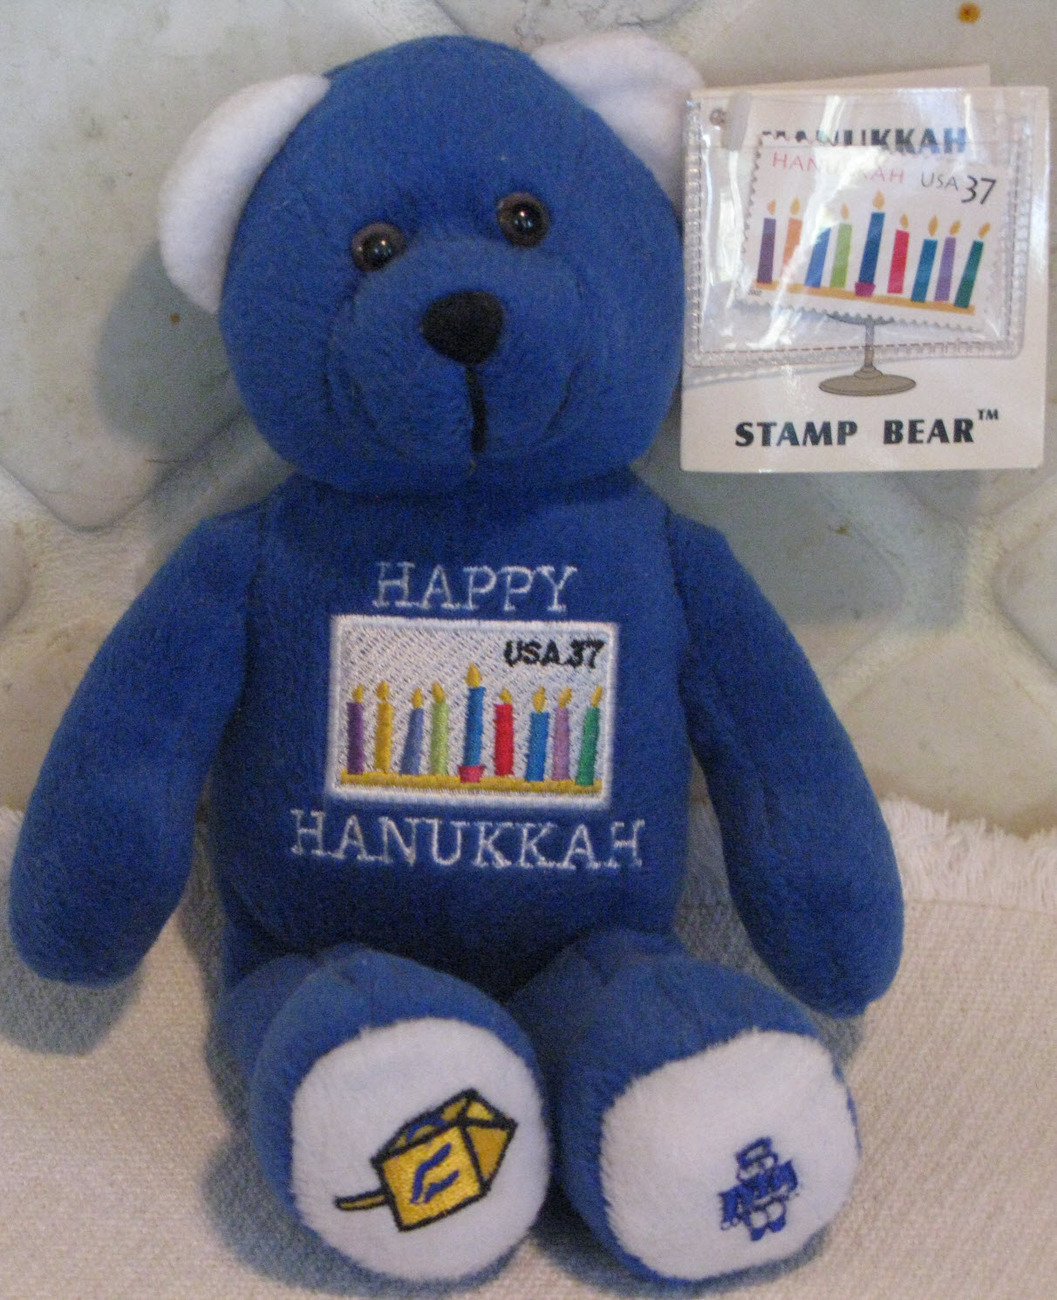 Hanukkah Stamp Bear with tags Beanie